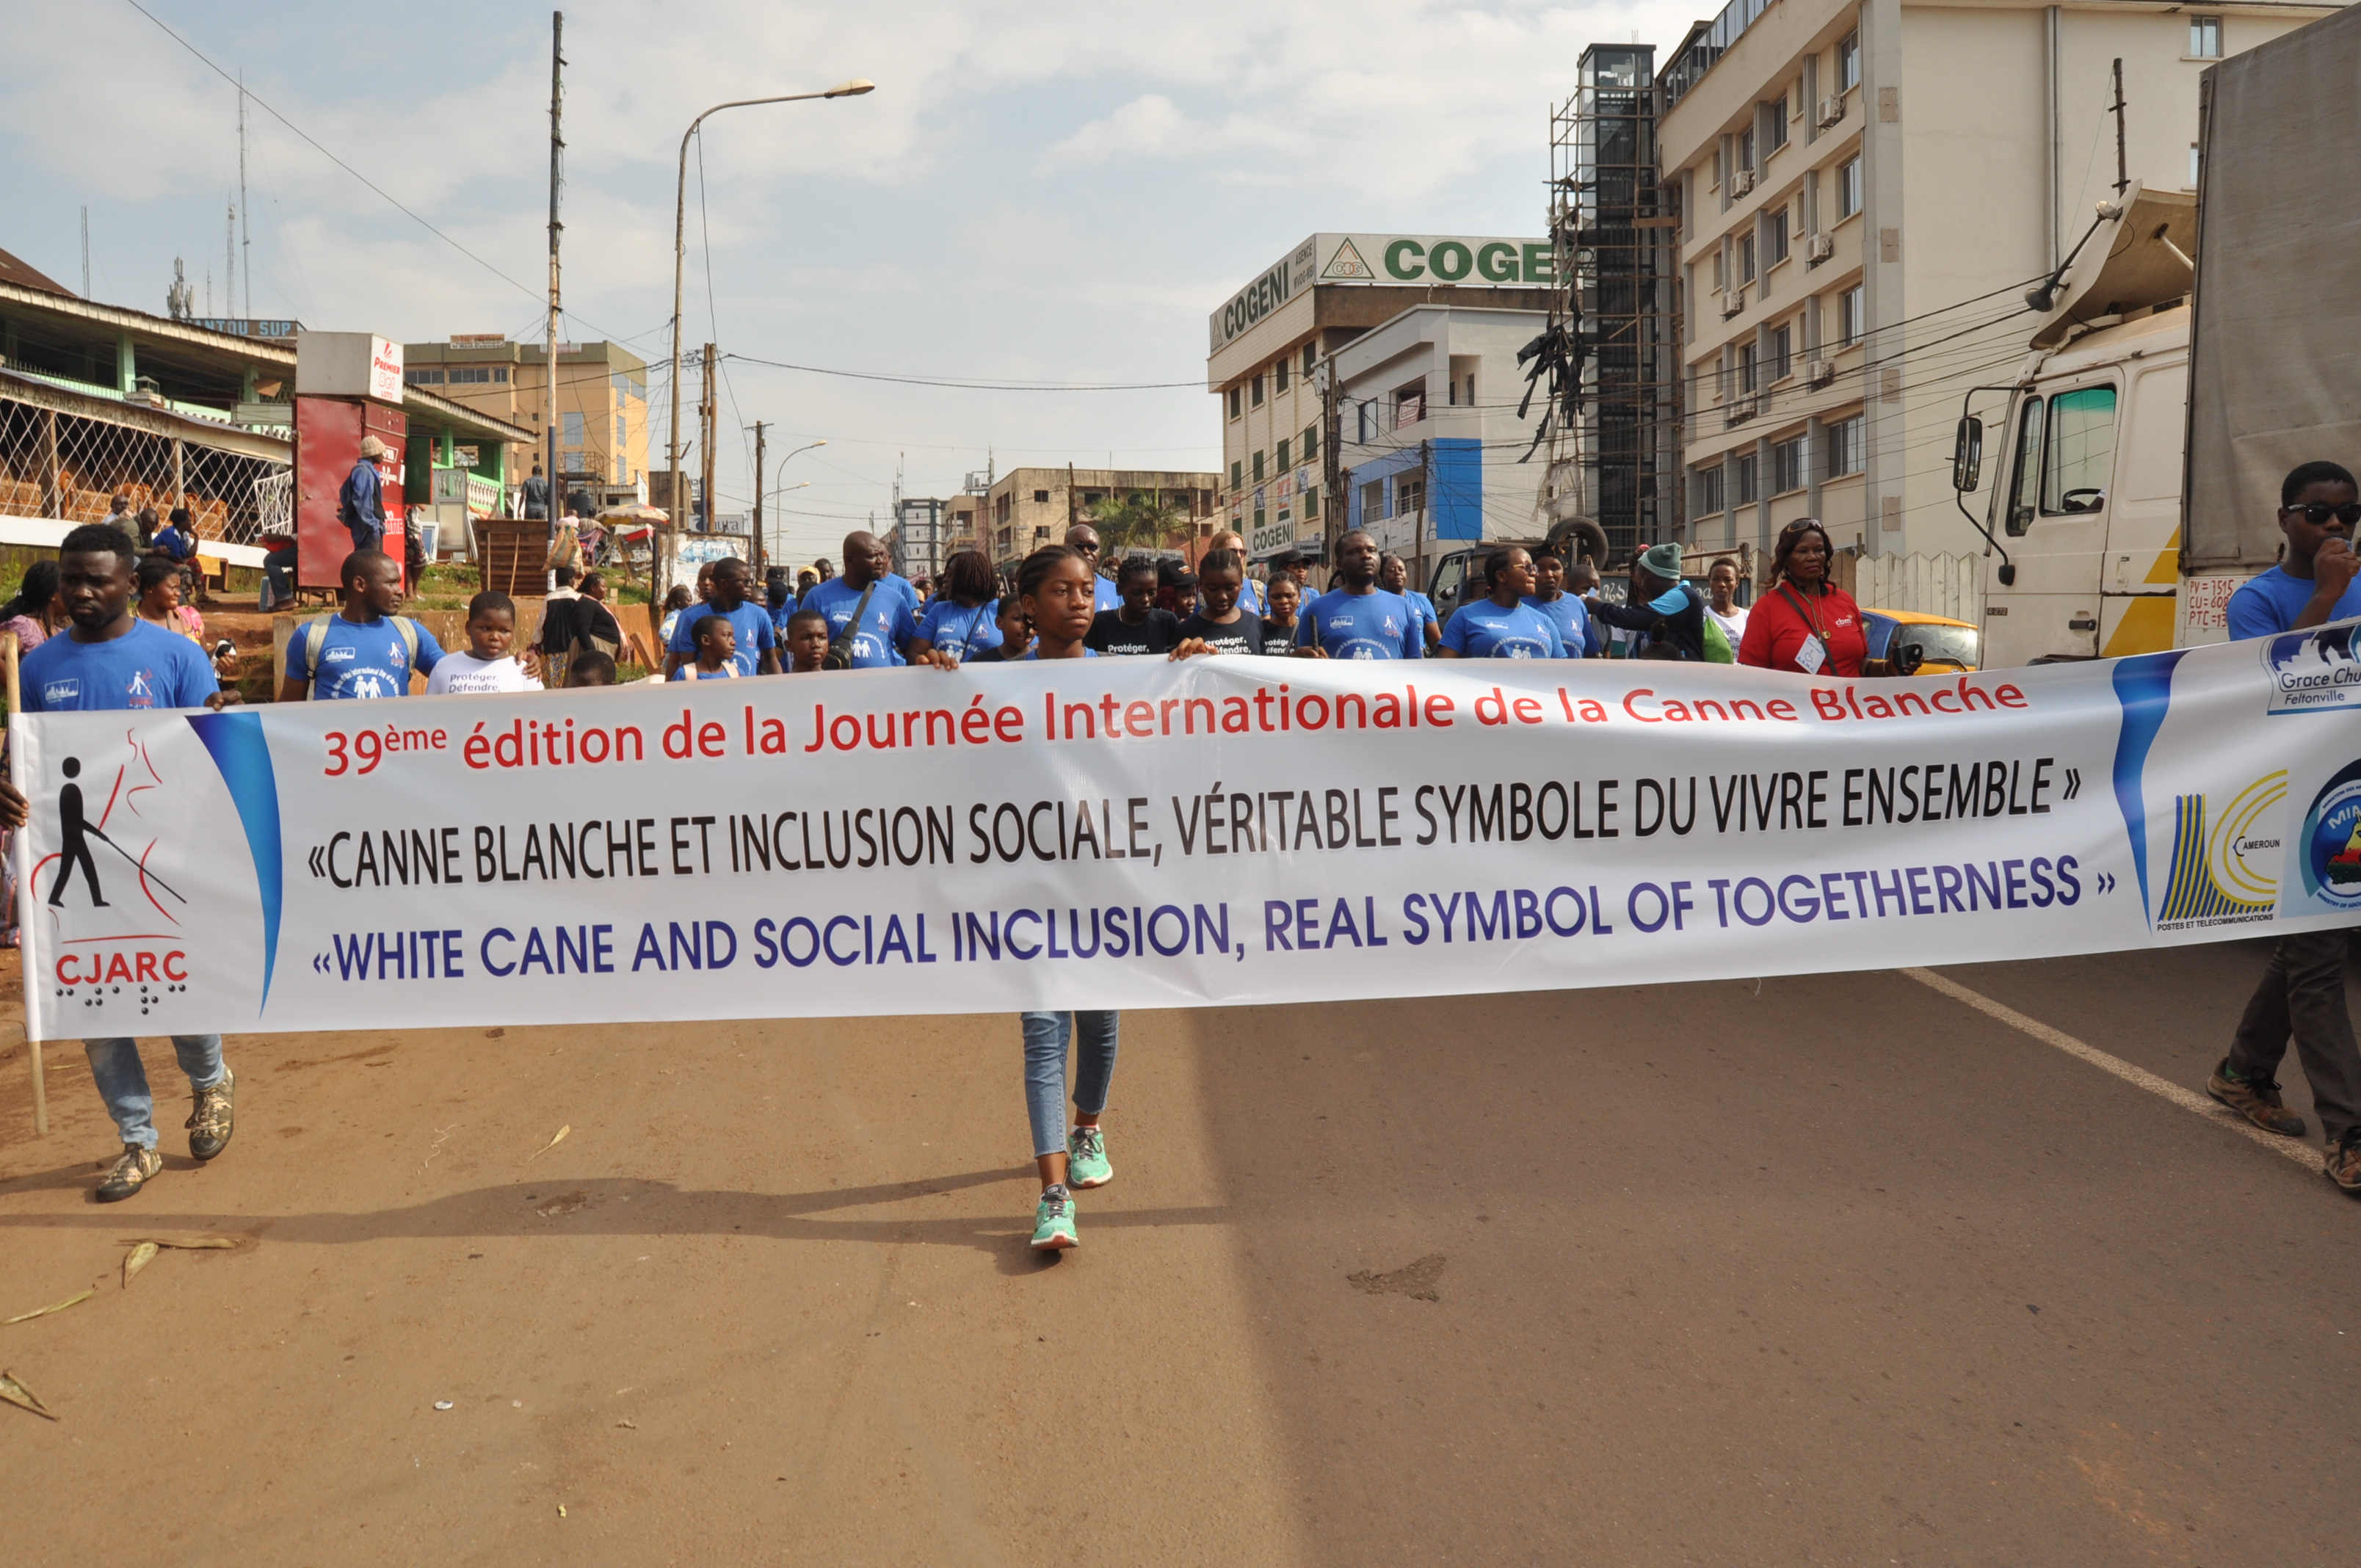 Celebration of the 39th edition of the International Day of the White Cane